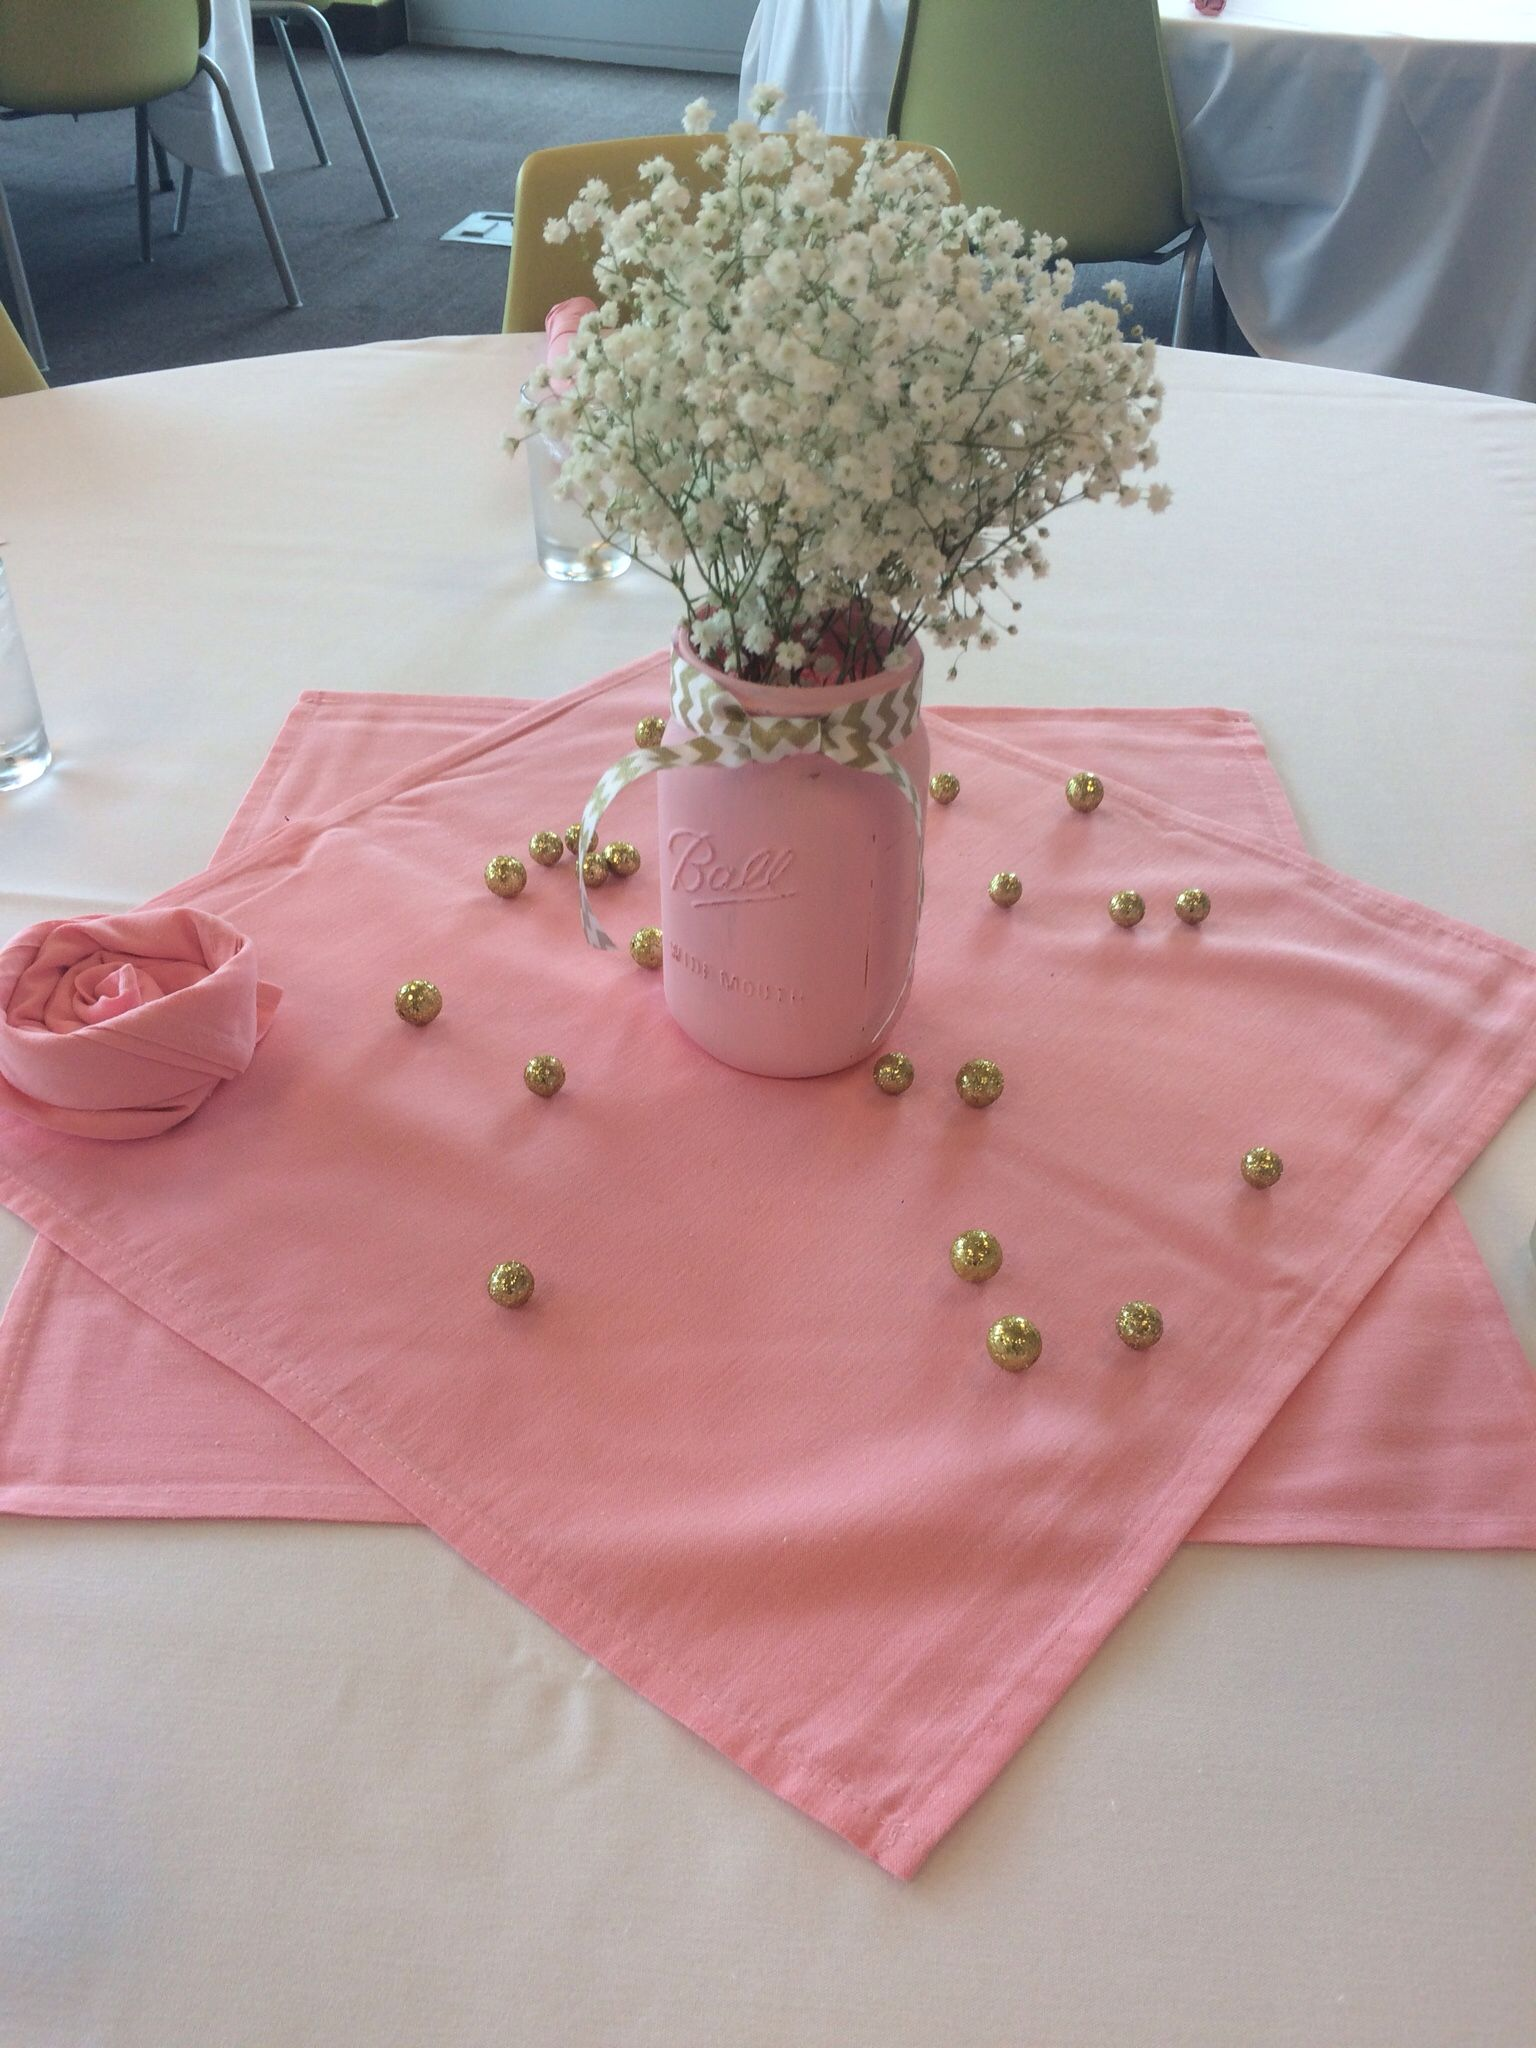 Find This Pin And More On Baby Shower Ideas By Luzumb. Pink U0026 Gold  Centerpiece.. Painted Mason Jar ...